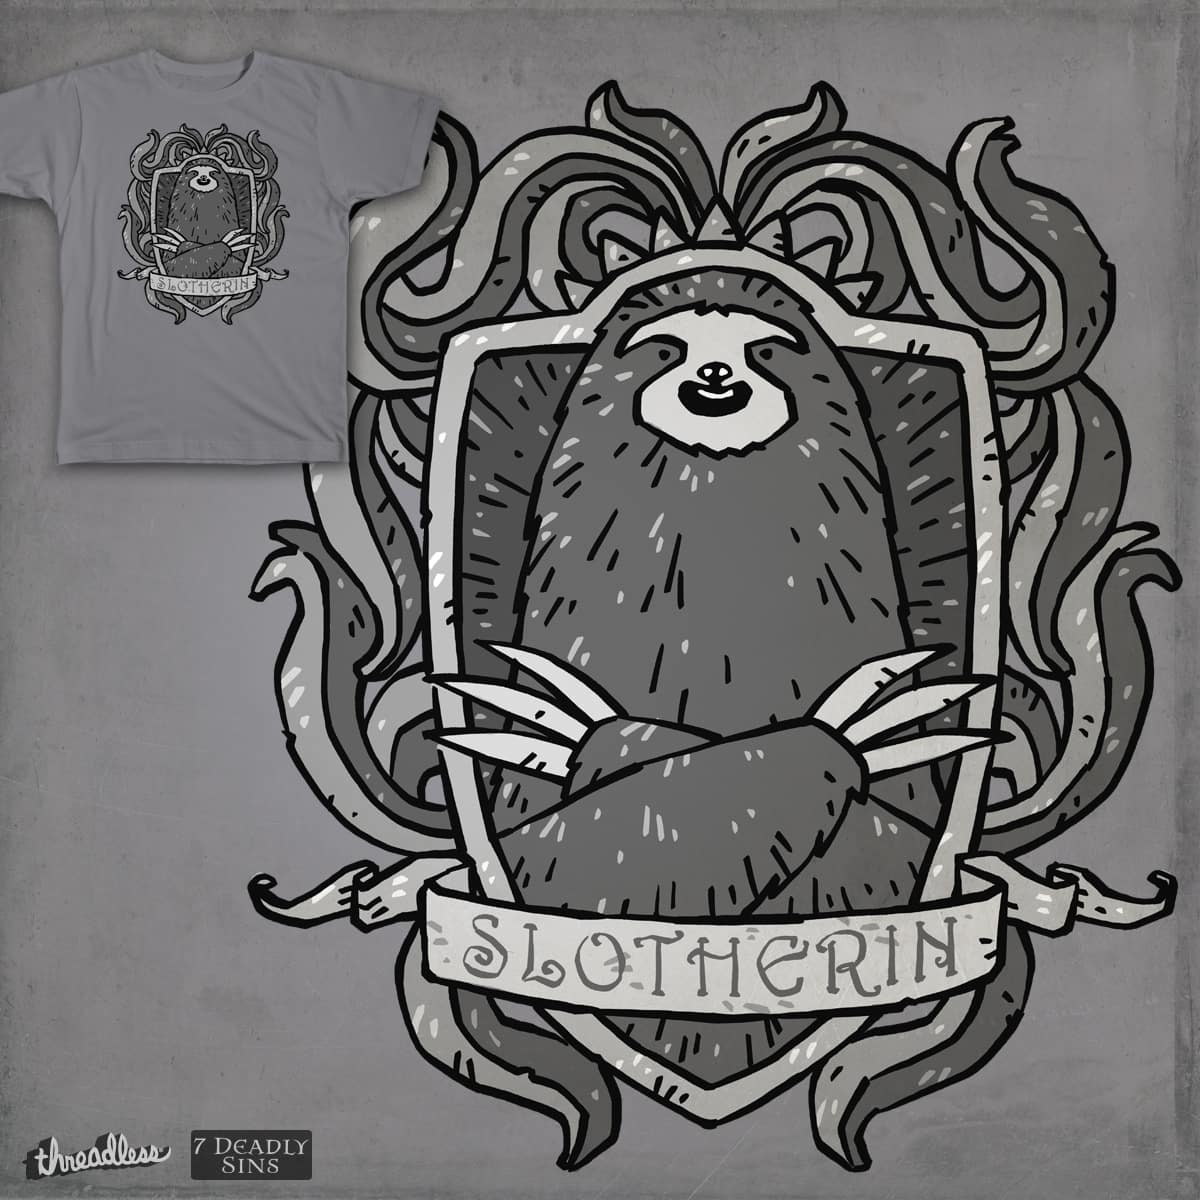 Slotherin by freehand on Threadless